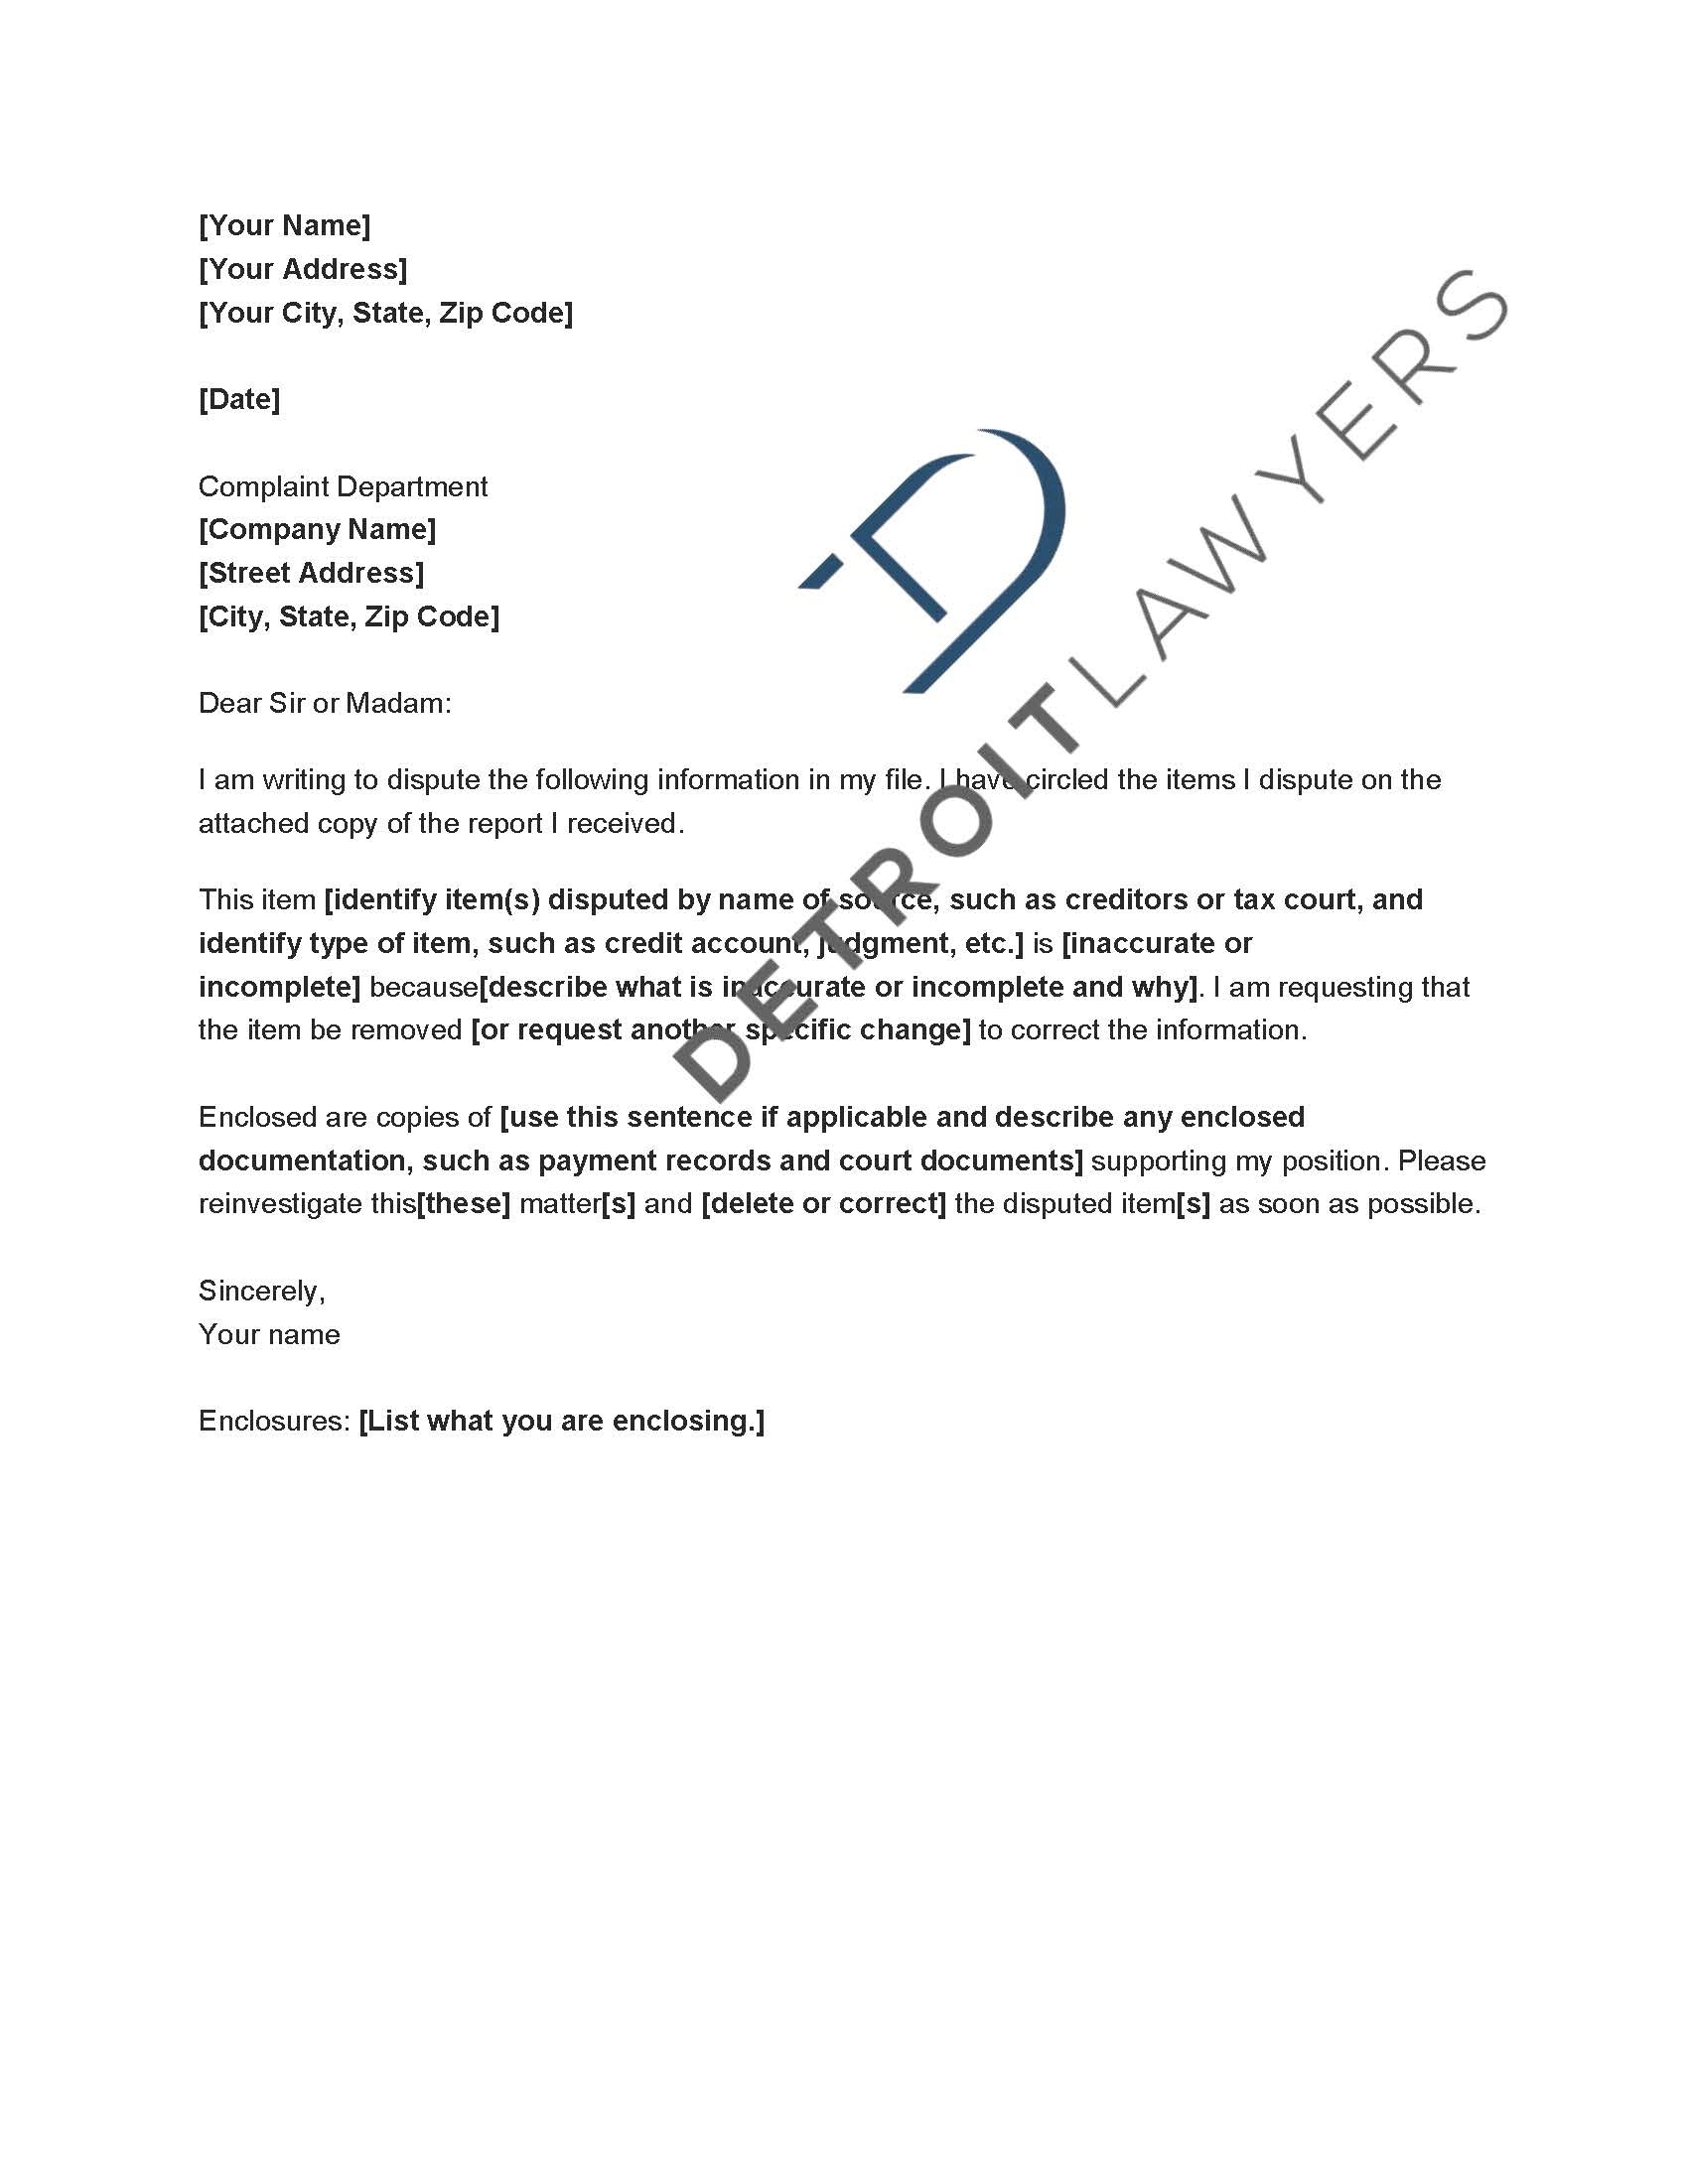 Experian Dispute Letter Template - Free Cover Letter Templates Letter to Creditors